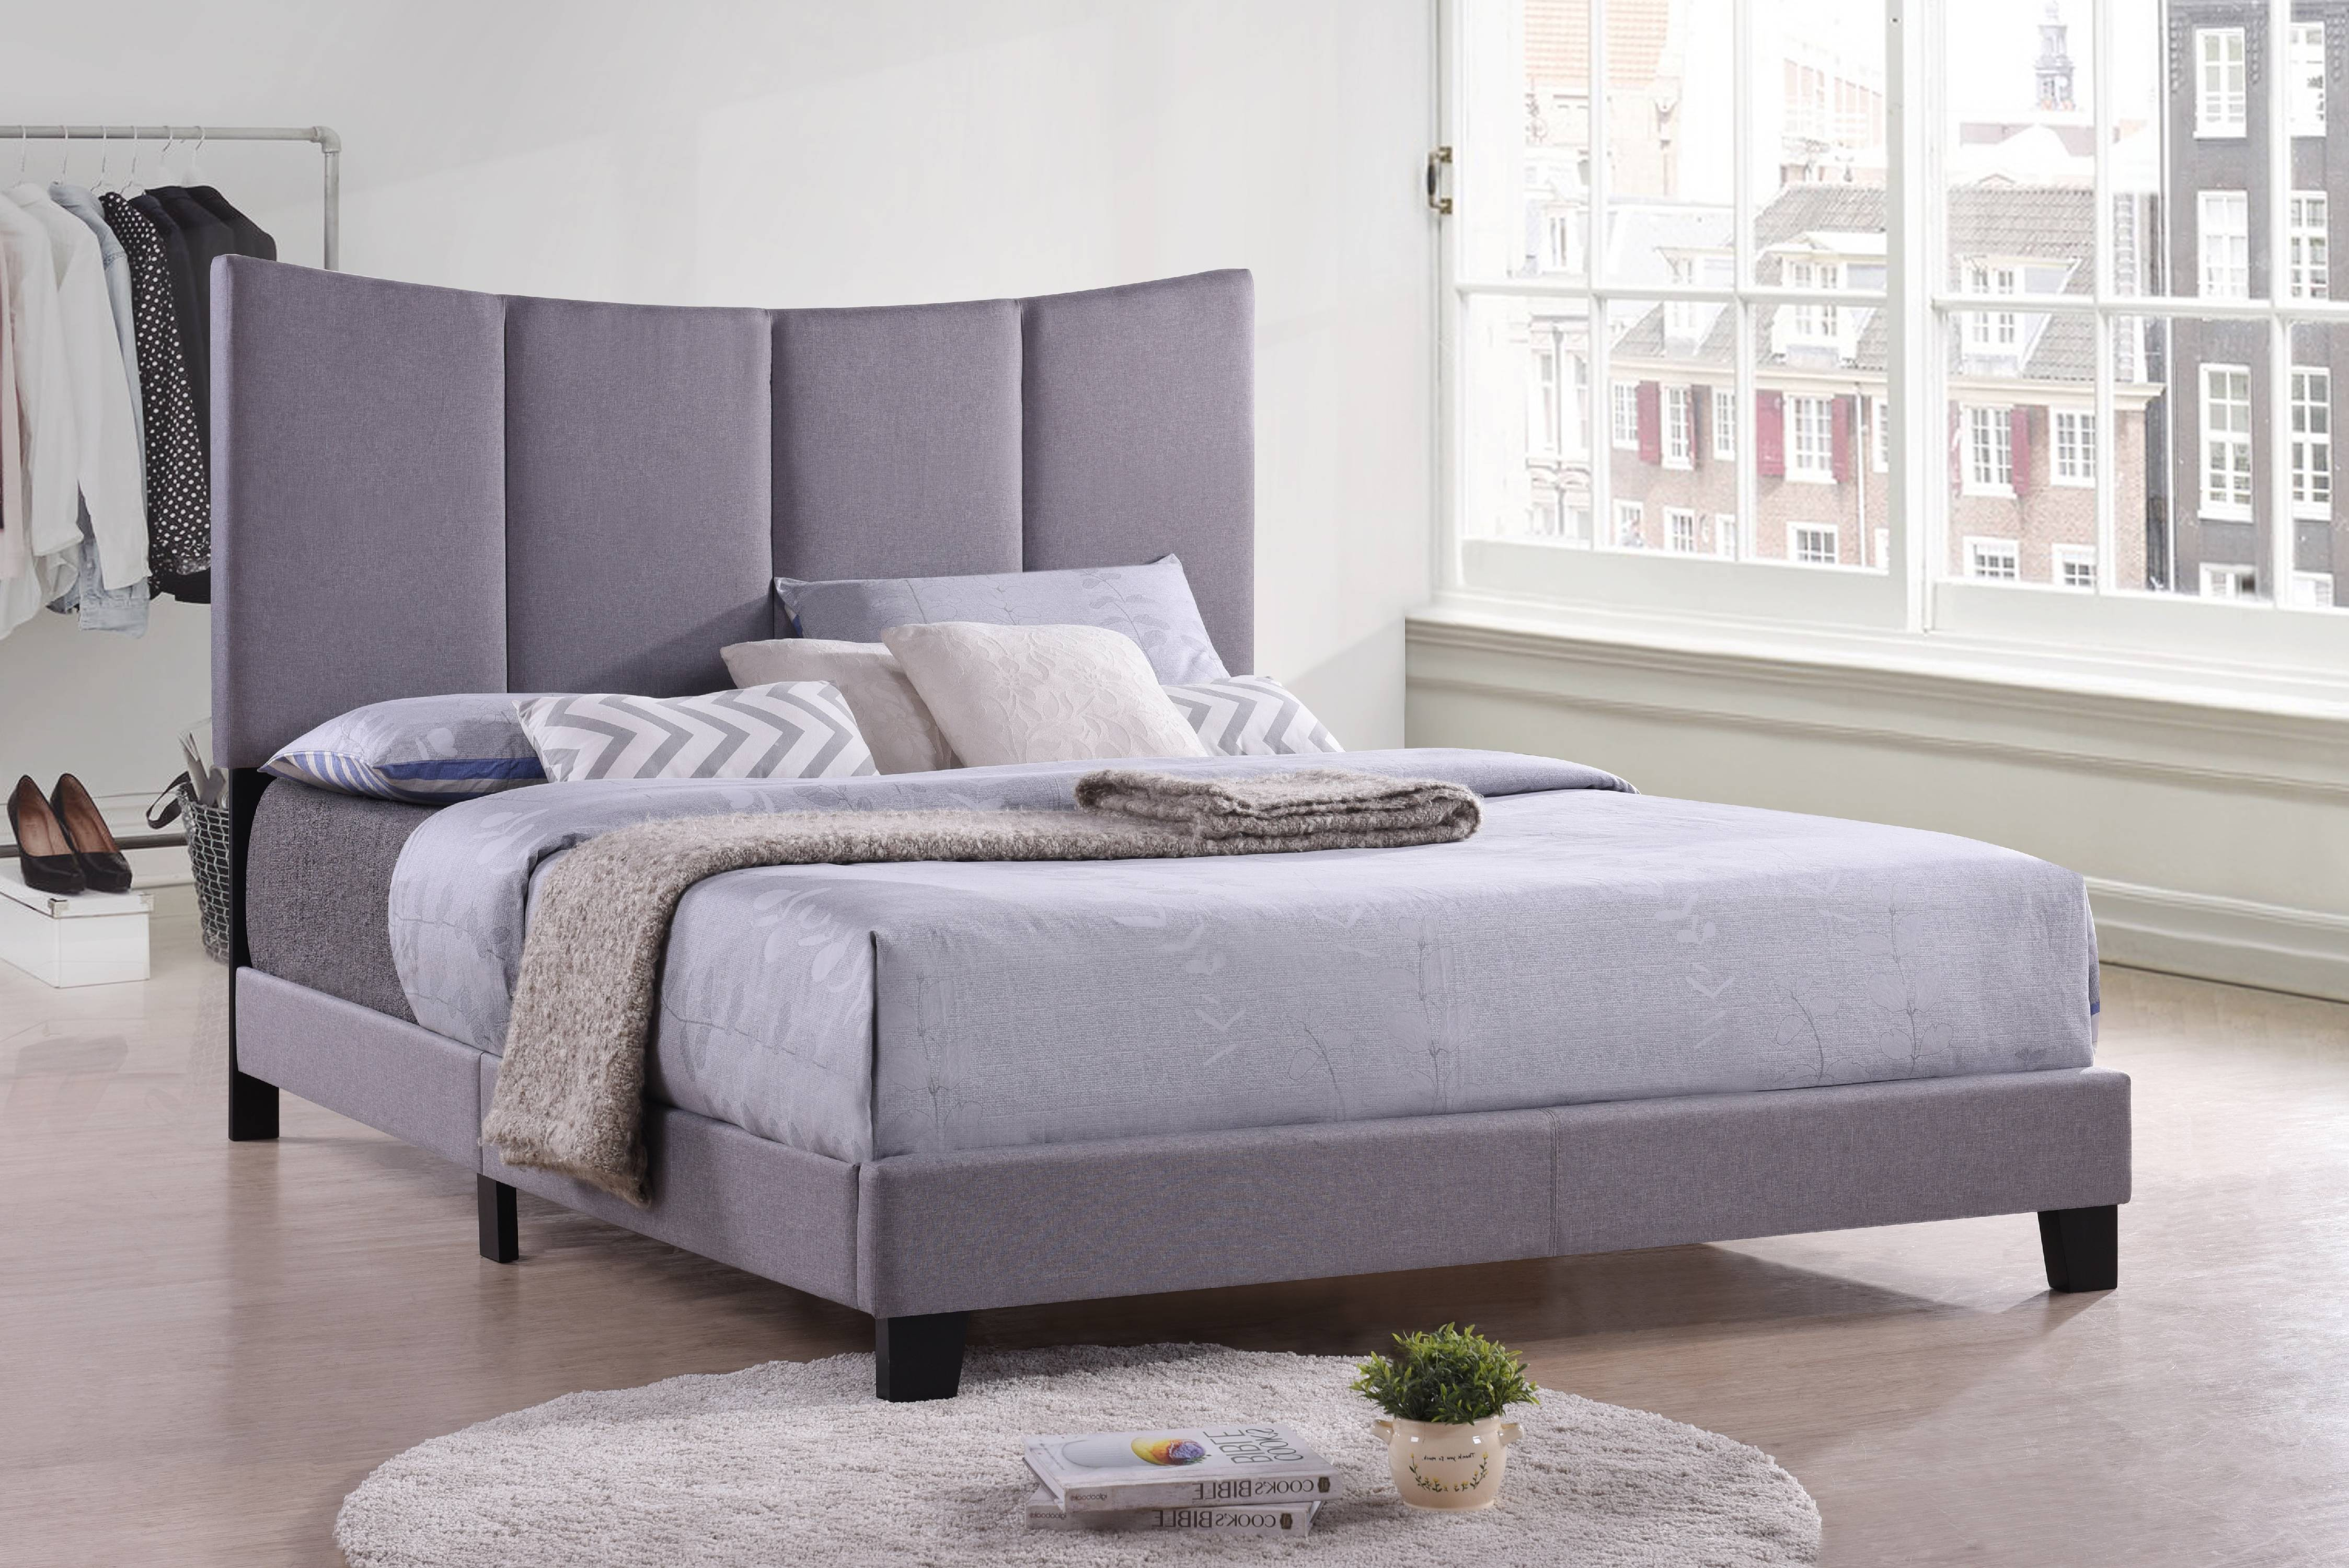 Selah Full Size Smoke Gray Polyester Transitional Upholstered Panel Bed With Solid Wood Legs (Headboard, Footboard,... by Pilaster Designs